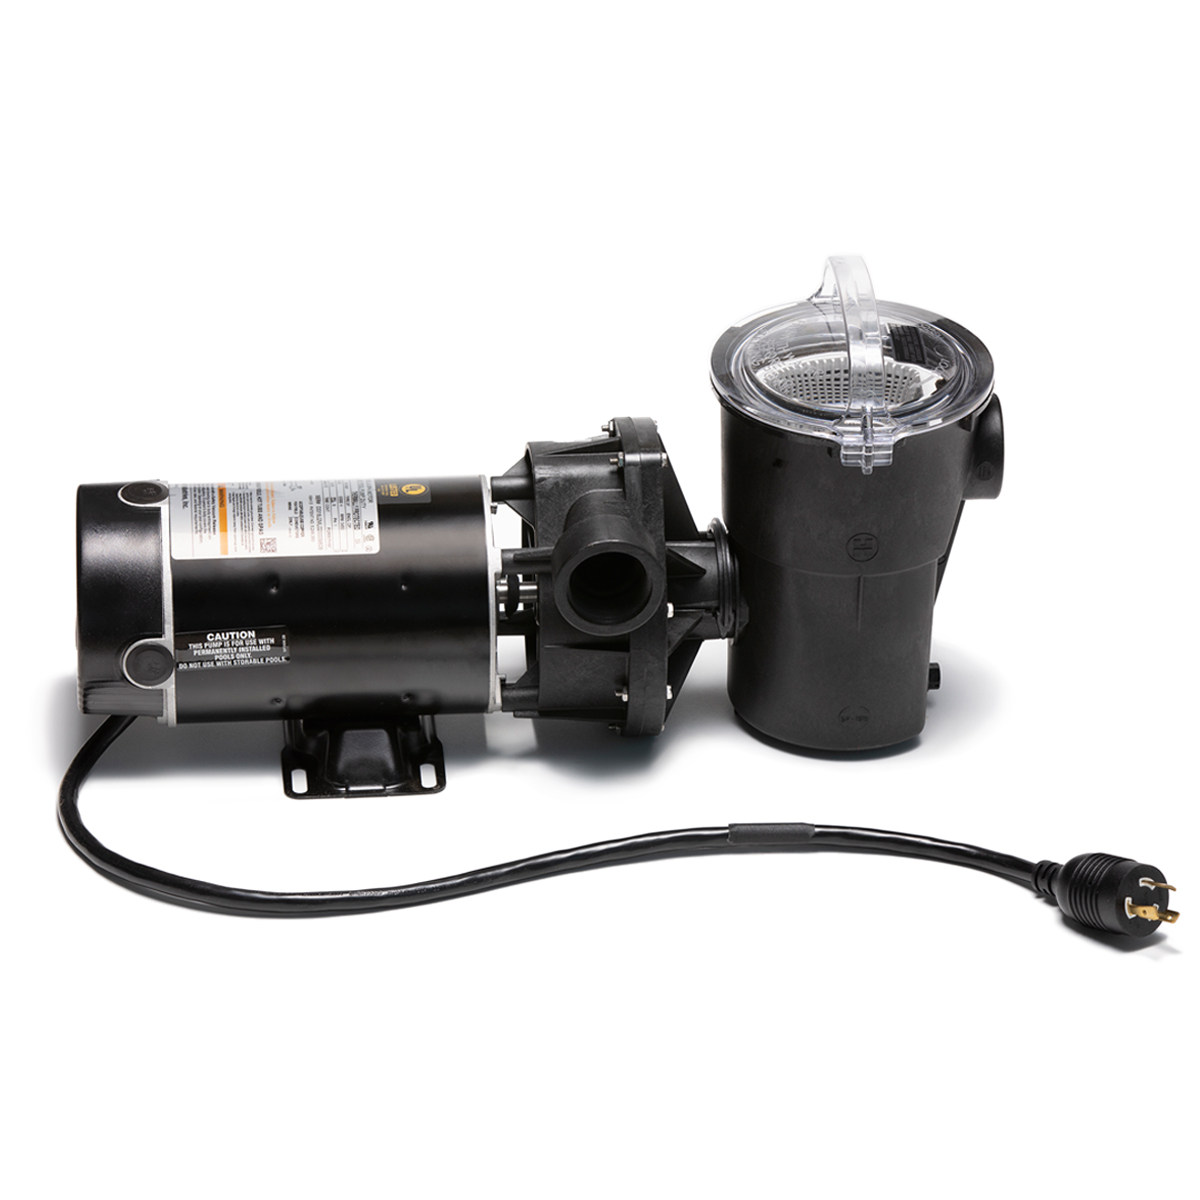 2.0HP Swimpro Horizontal Discharge Pump with Twist-Lock Cord and 2 Year Warranty